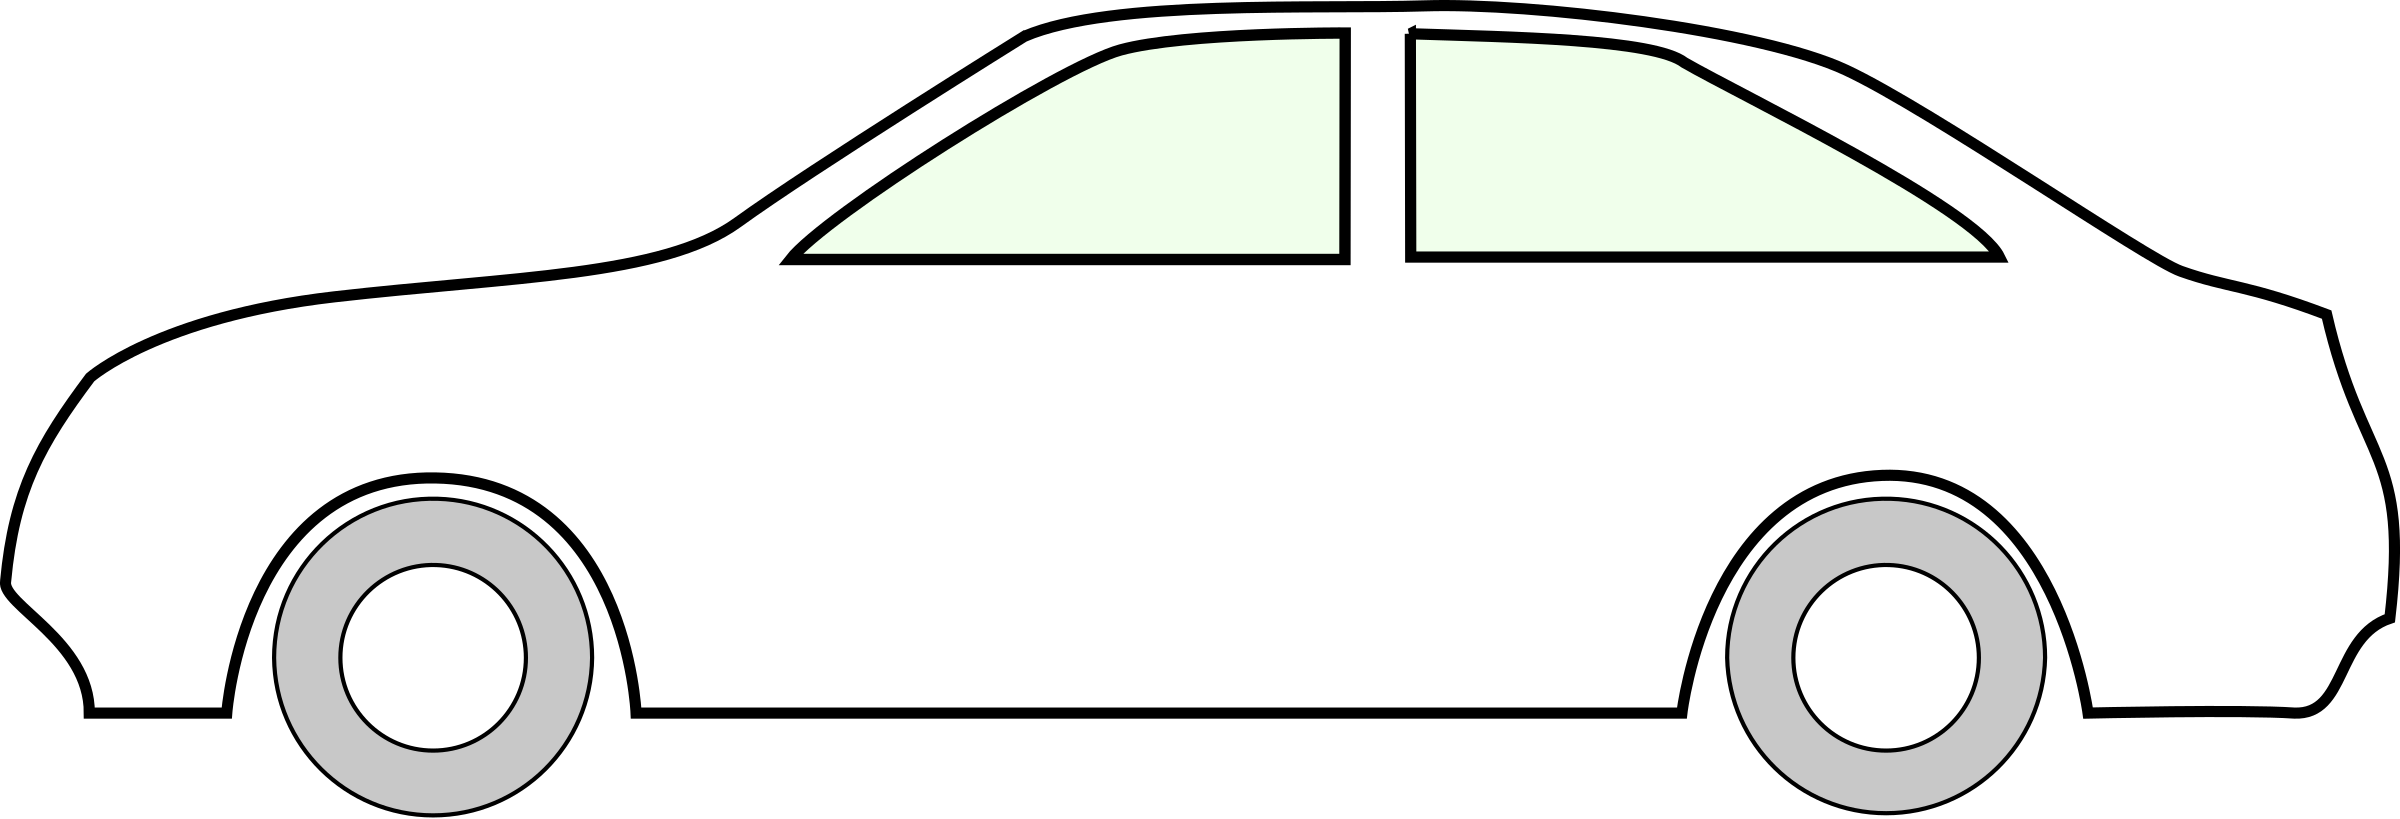 Simple Side Of Car By Z Car Outline White On Openclipart Simple Car Drawing Car Drawing Kids Car Drawing Easy